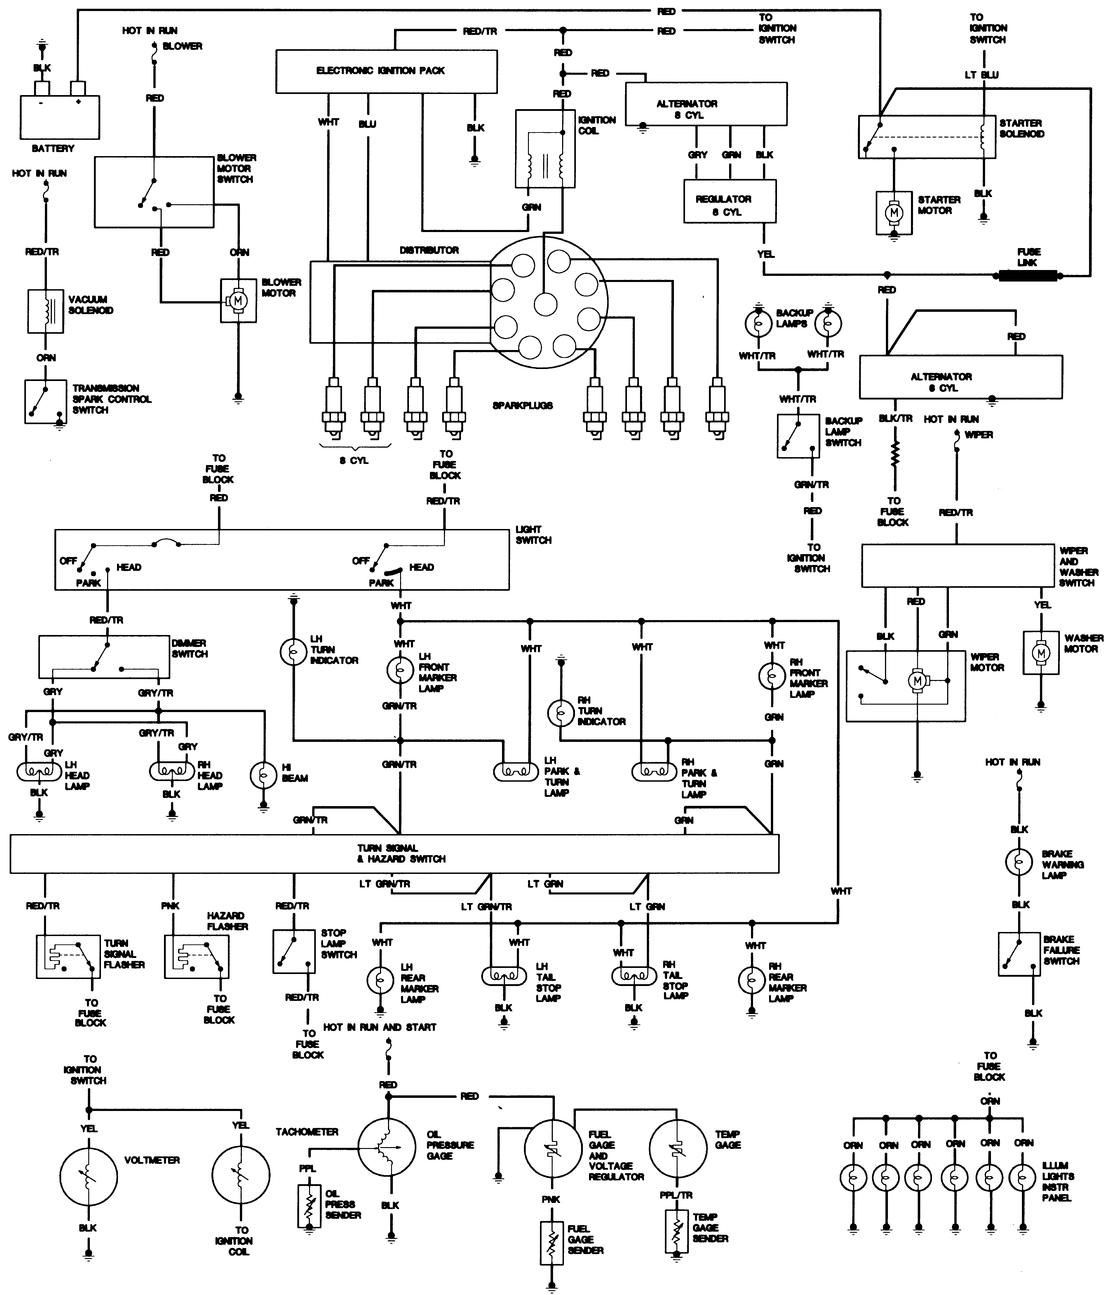 1961 jeep cj5 wiring diagrams 1980 cj5 wiring diagram furthermore jeep cj7 tachometer ...